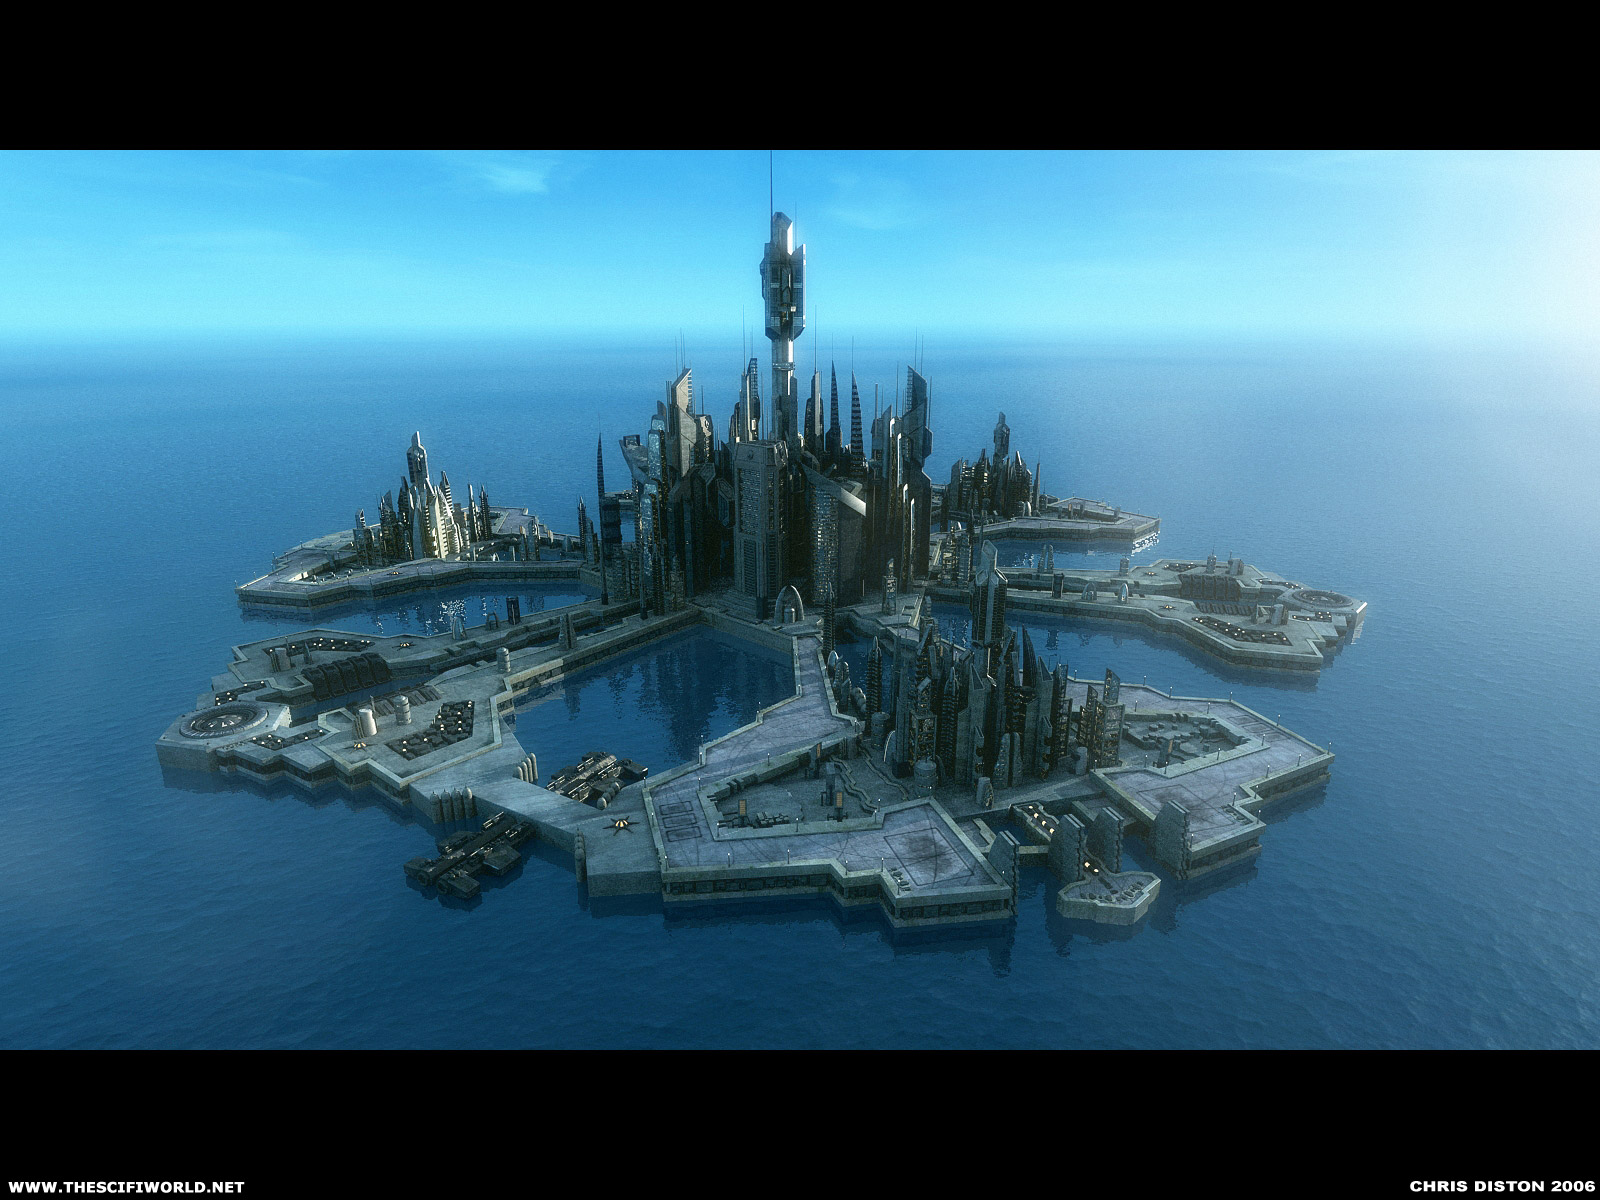 http://fc02.deviantart.com/fs23/f/2008/009/8/d/Atlantis_City_Daytime_by_Diston.jpg